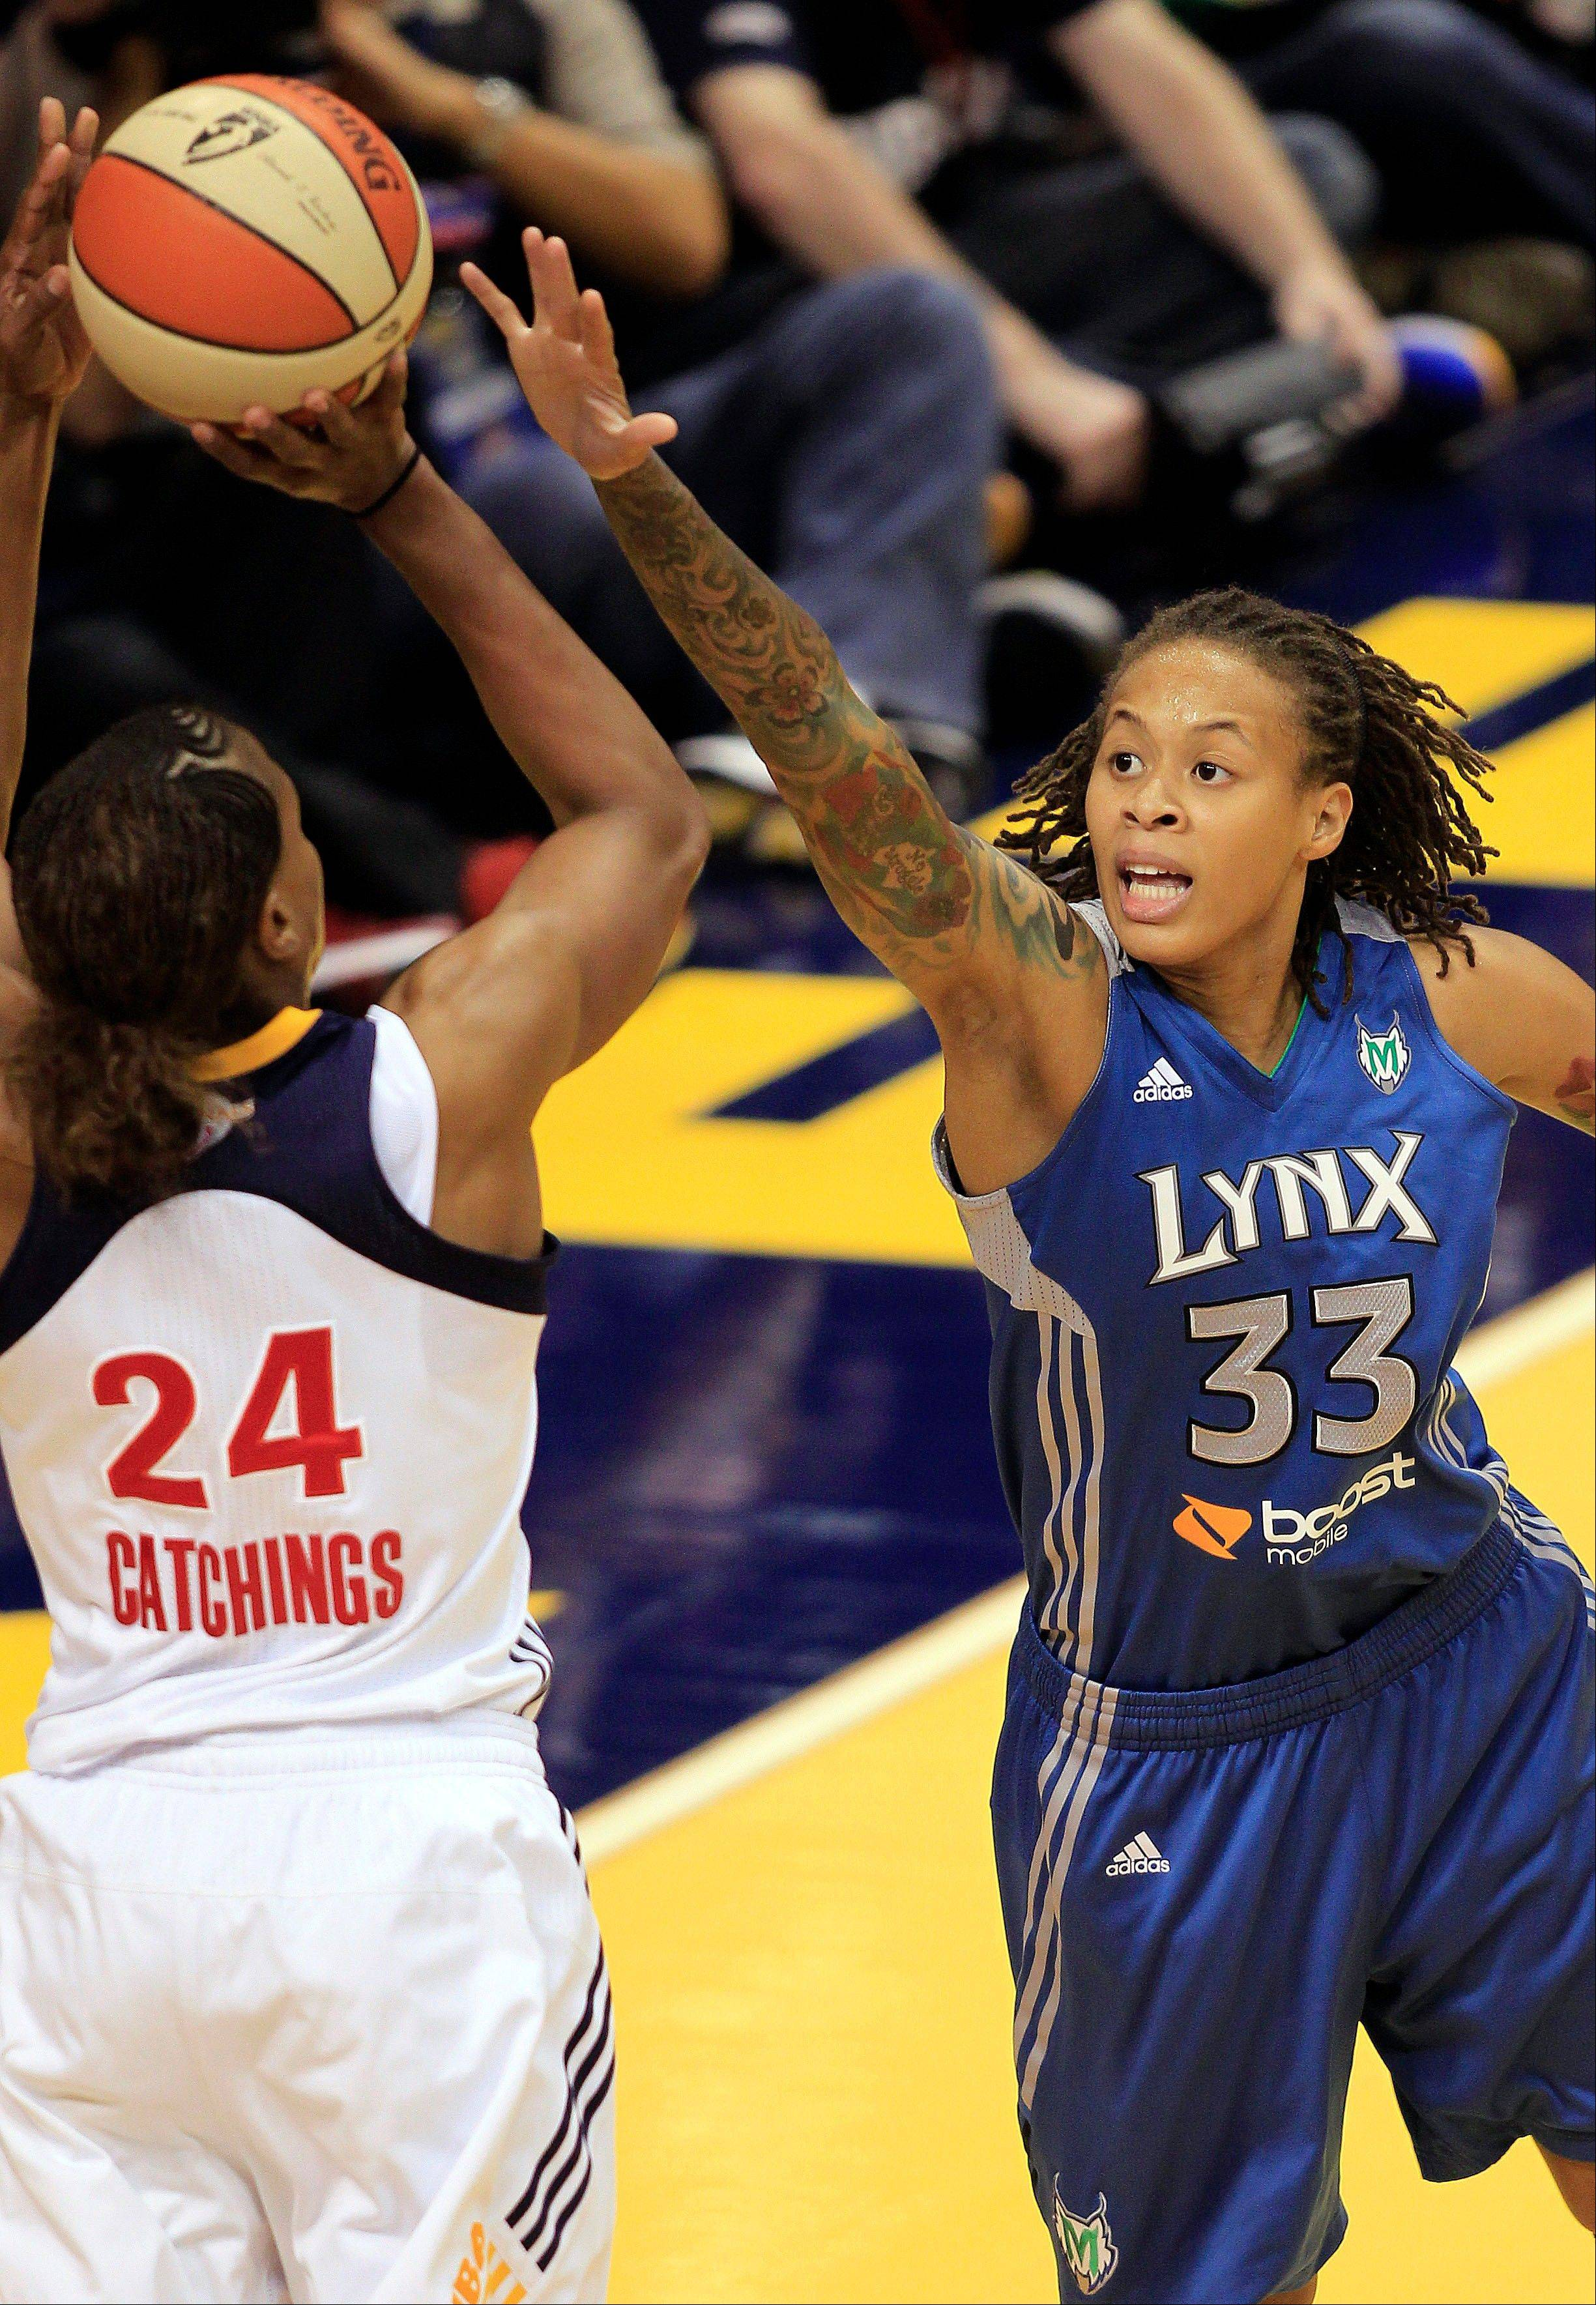 Minnesota Lynx guard Seimone Augustus, right, defends a shot by Indiana Fever forward Tamika Catchings in the first half of Game 4 of the WNBA basketball Finals Sunday, Oct. 21, 2012, in Indianapolis.